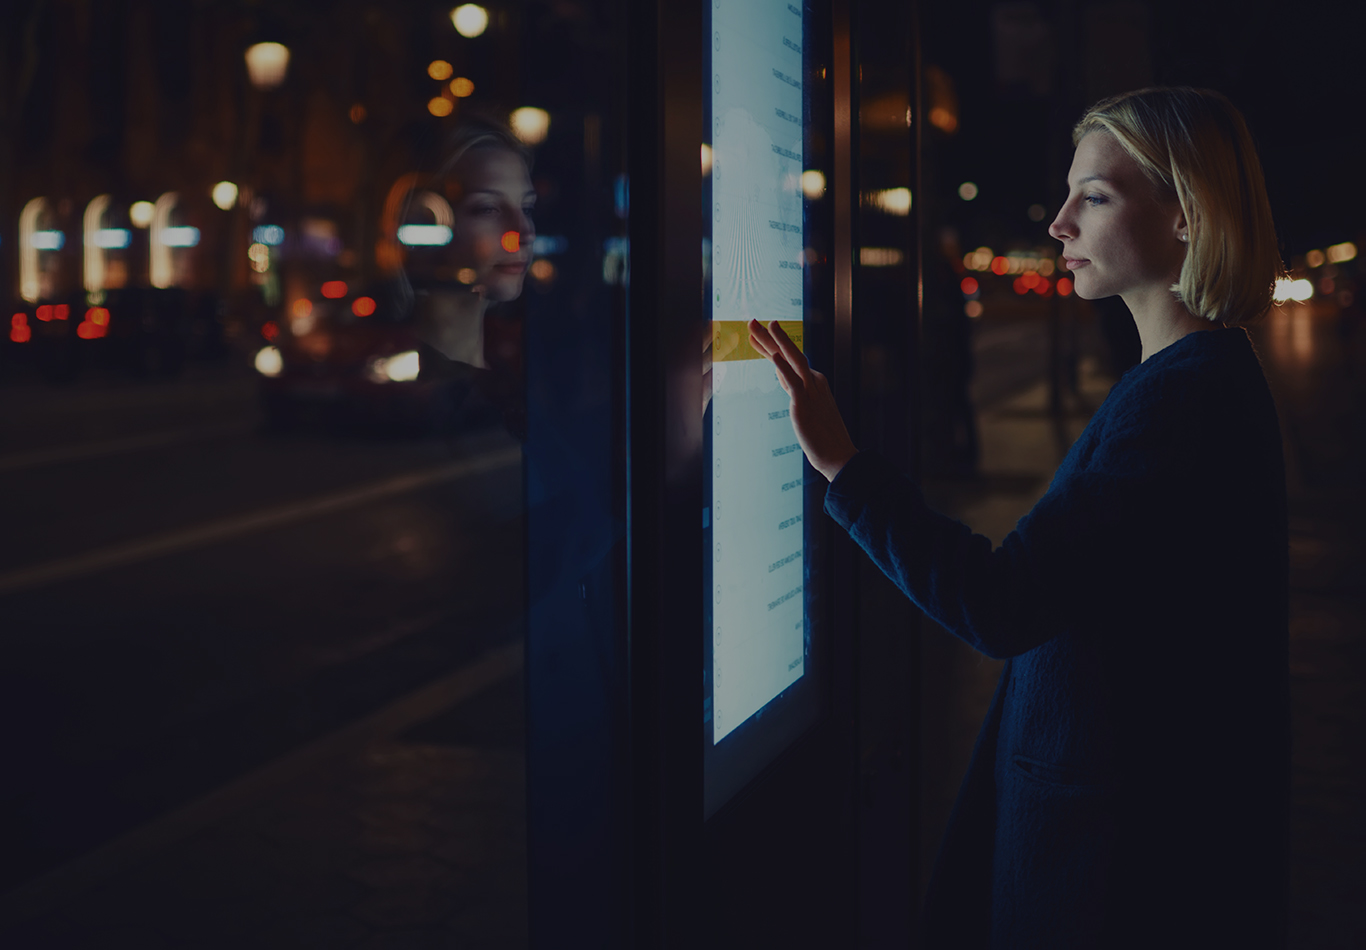 A woman is interacting with a public touch screen at night